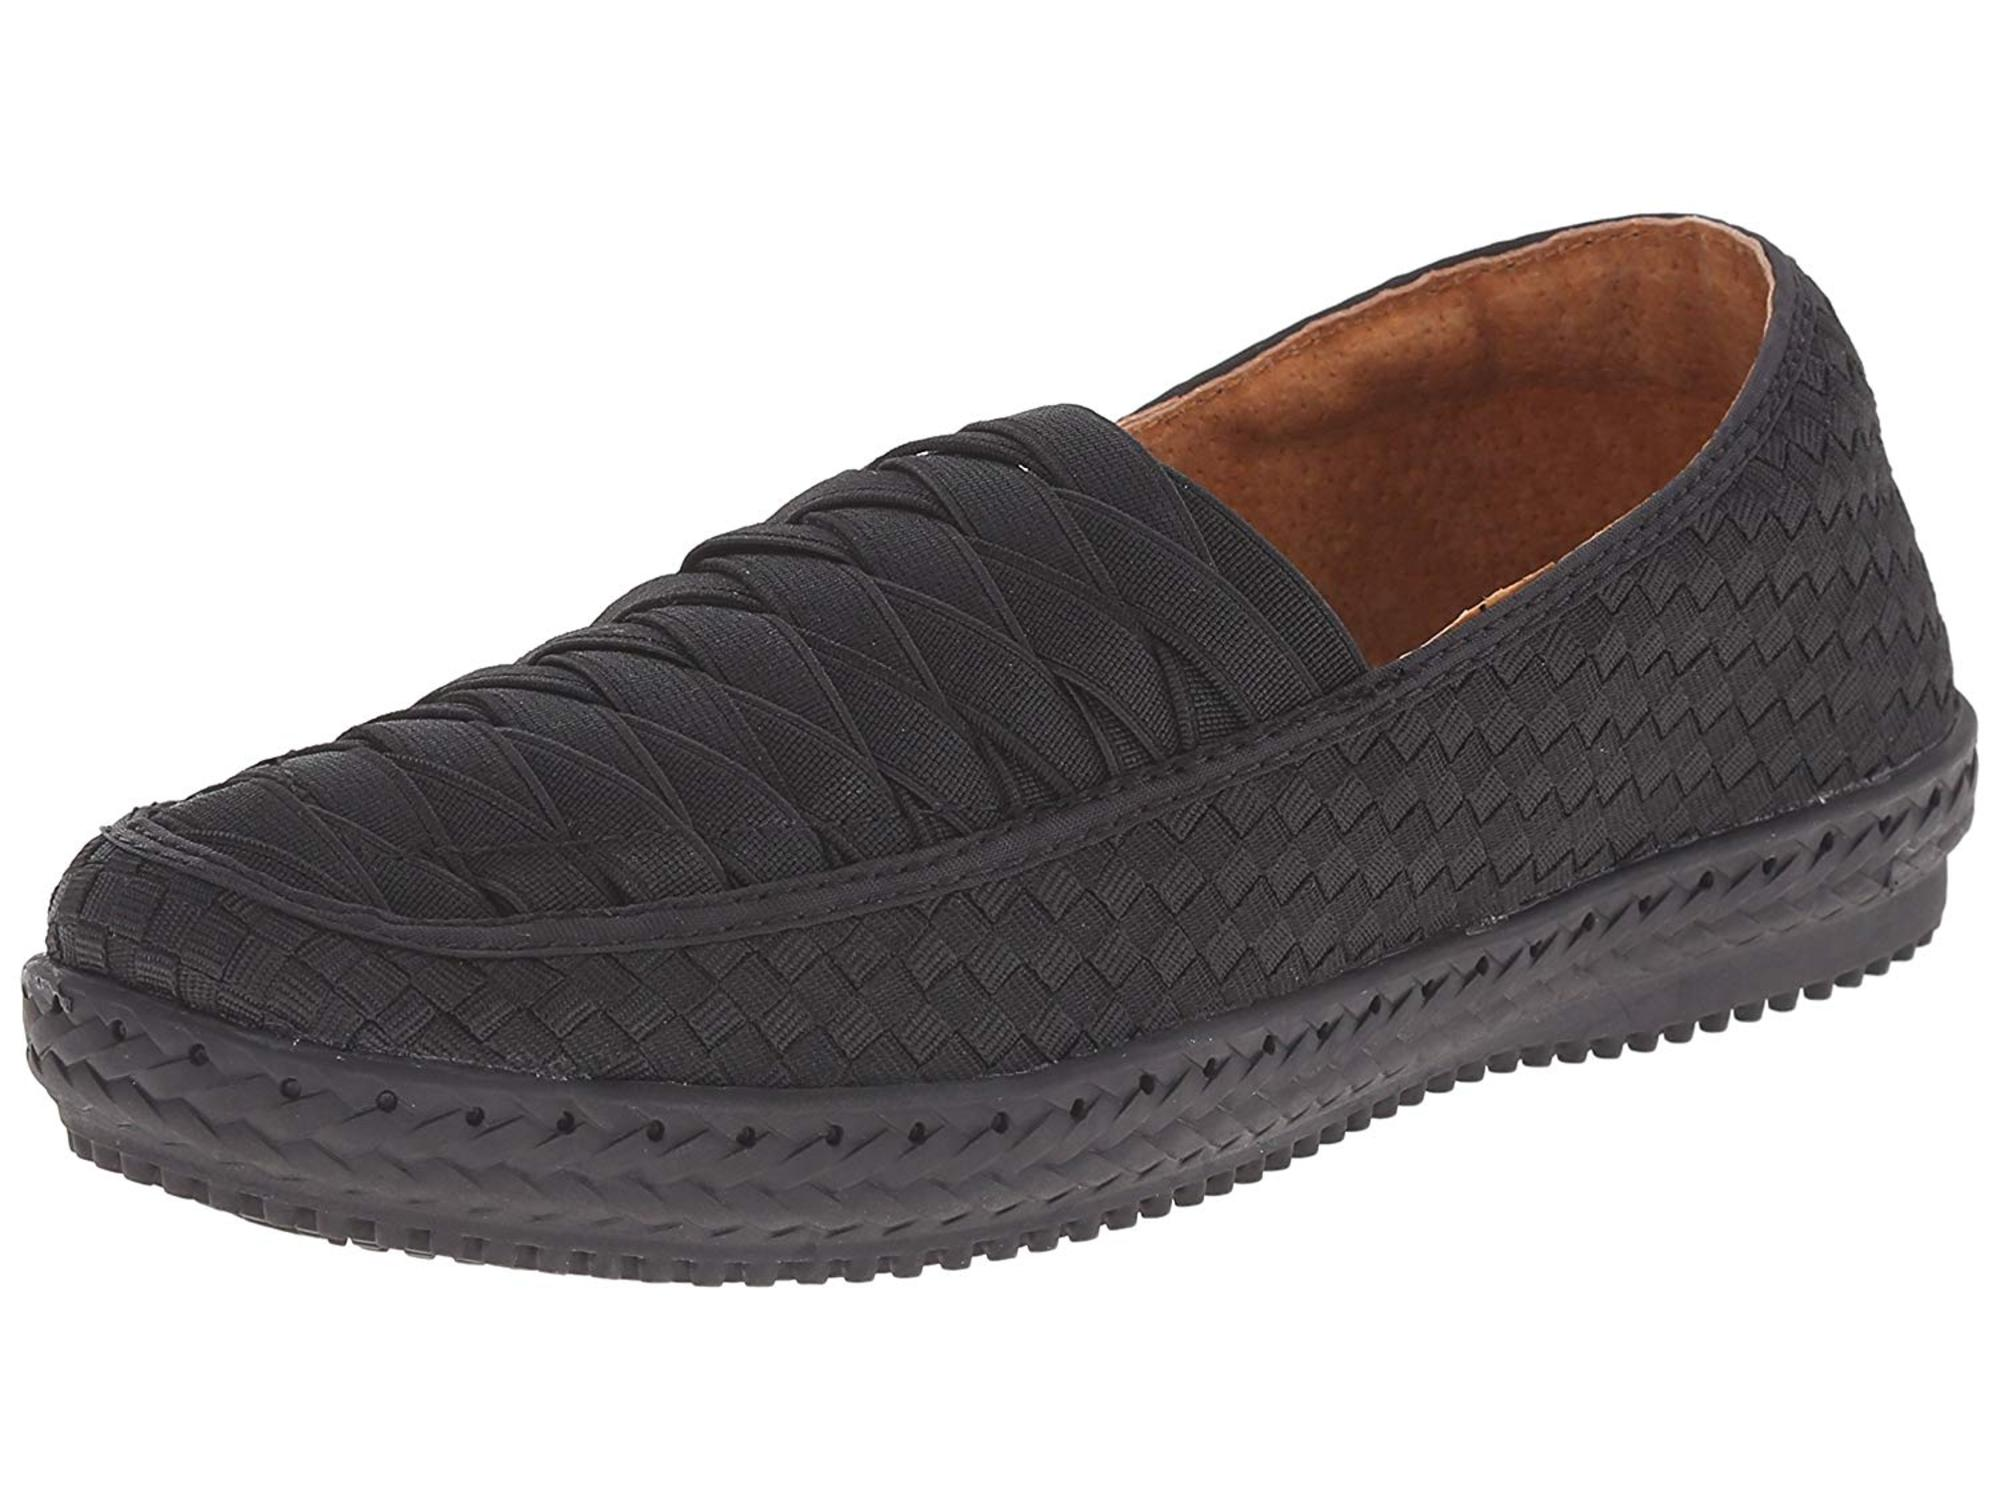 Bernie Mev Womens Lola Slip-On Loafer